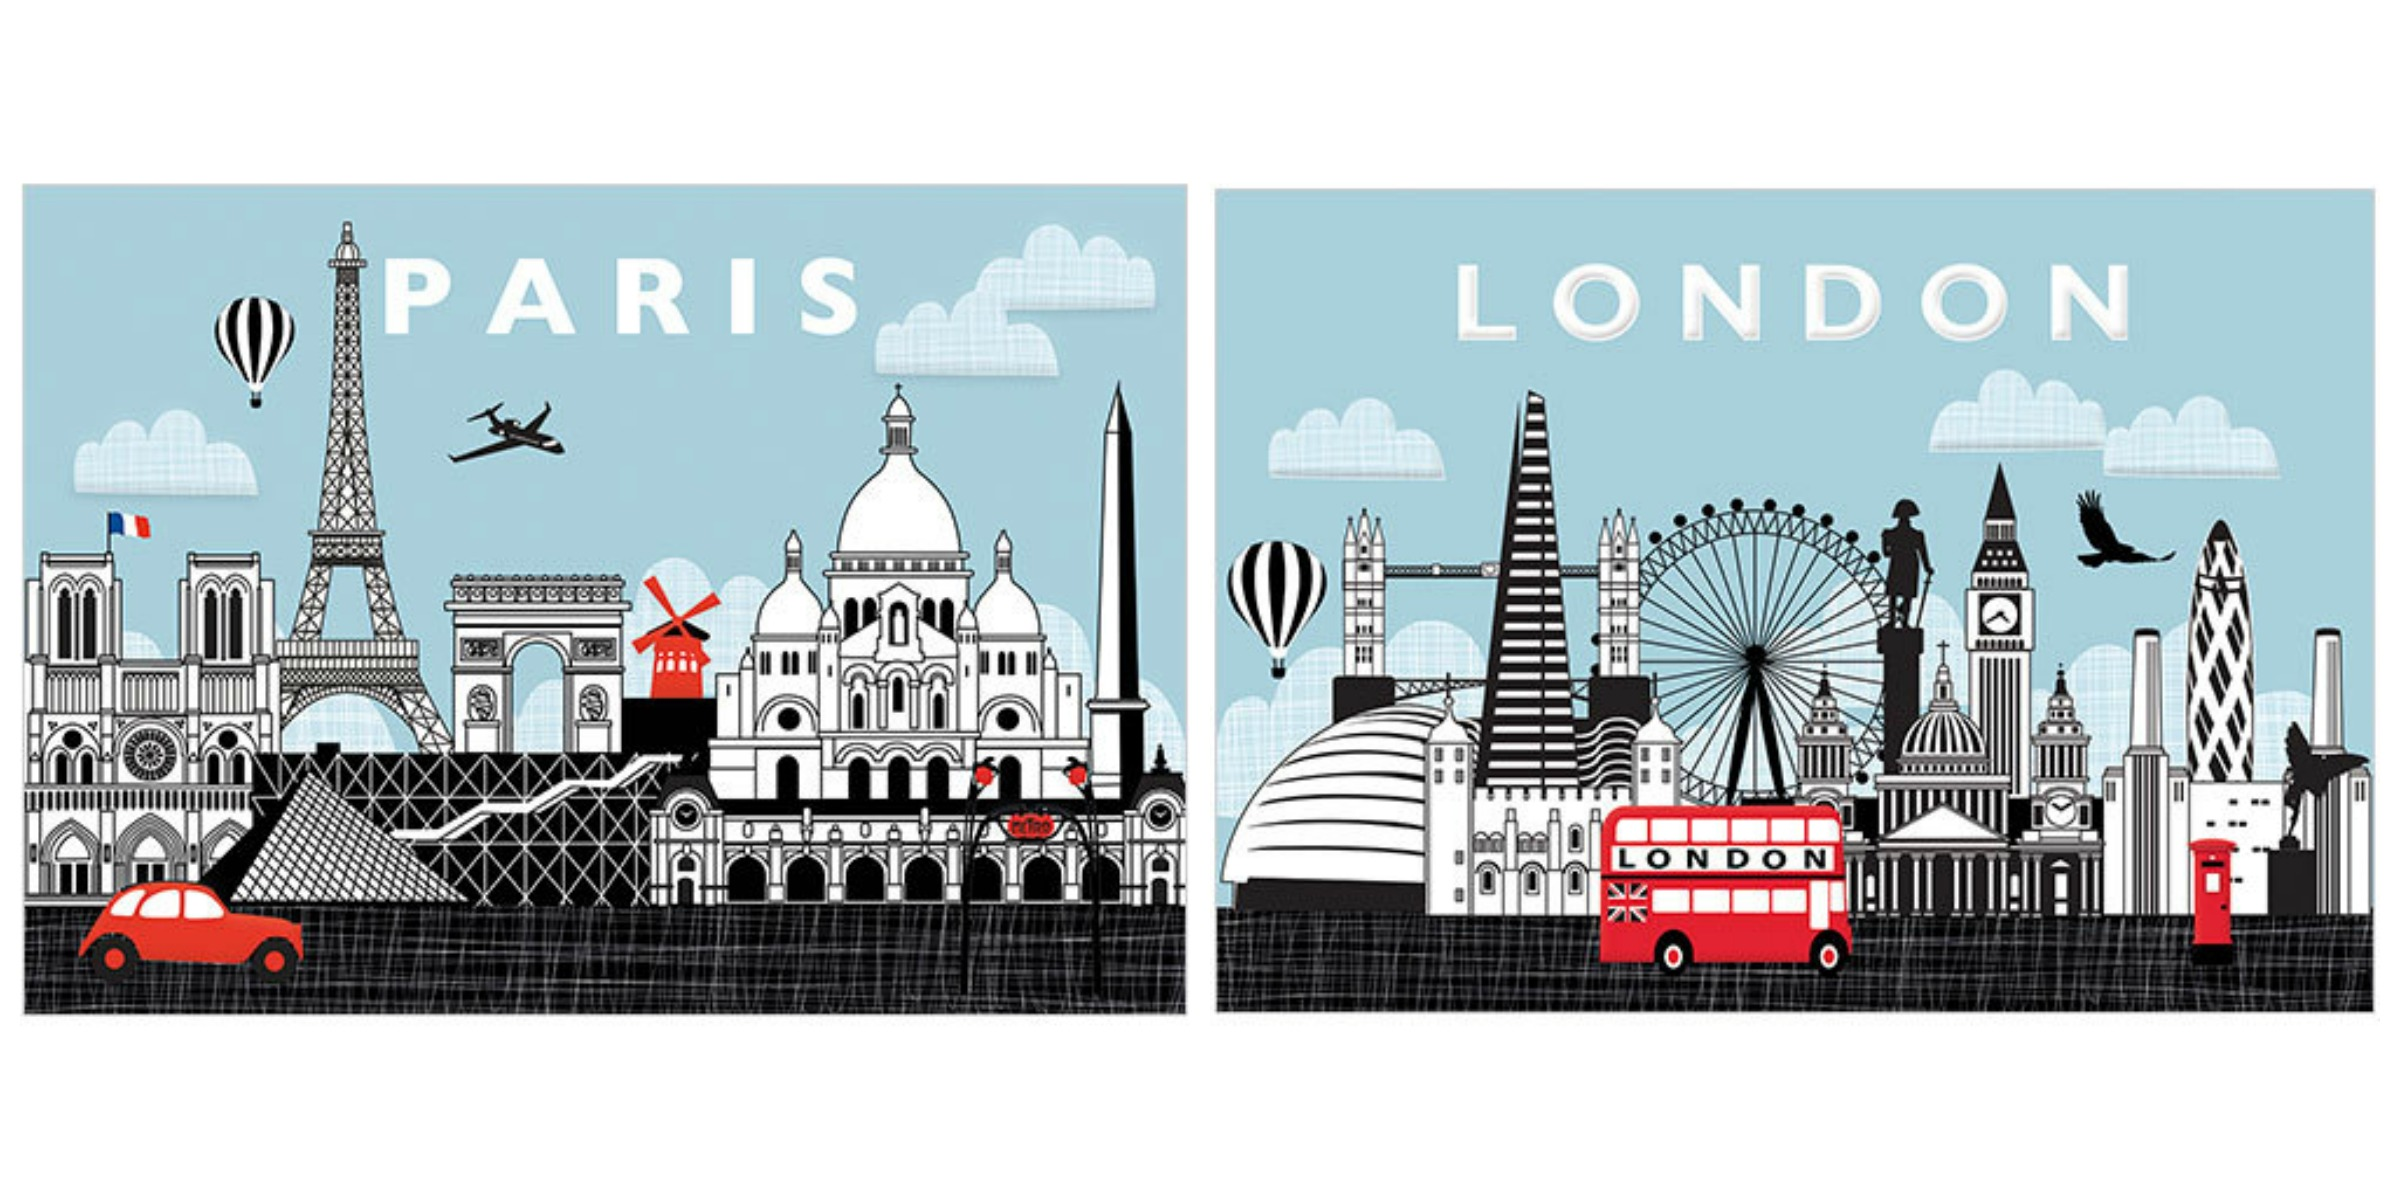 Paris Greeting Card London Greeting Card